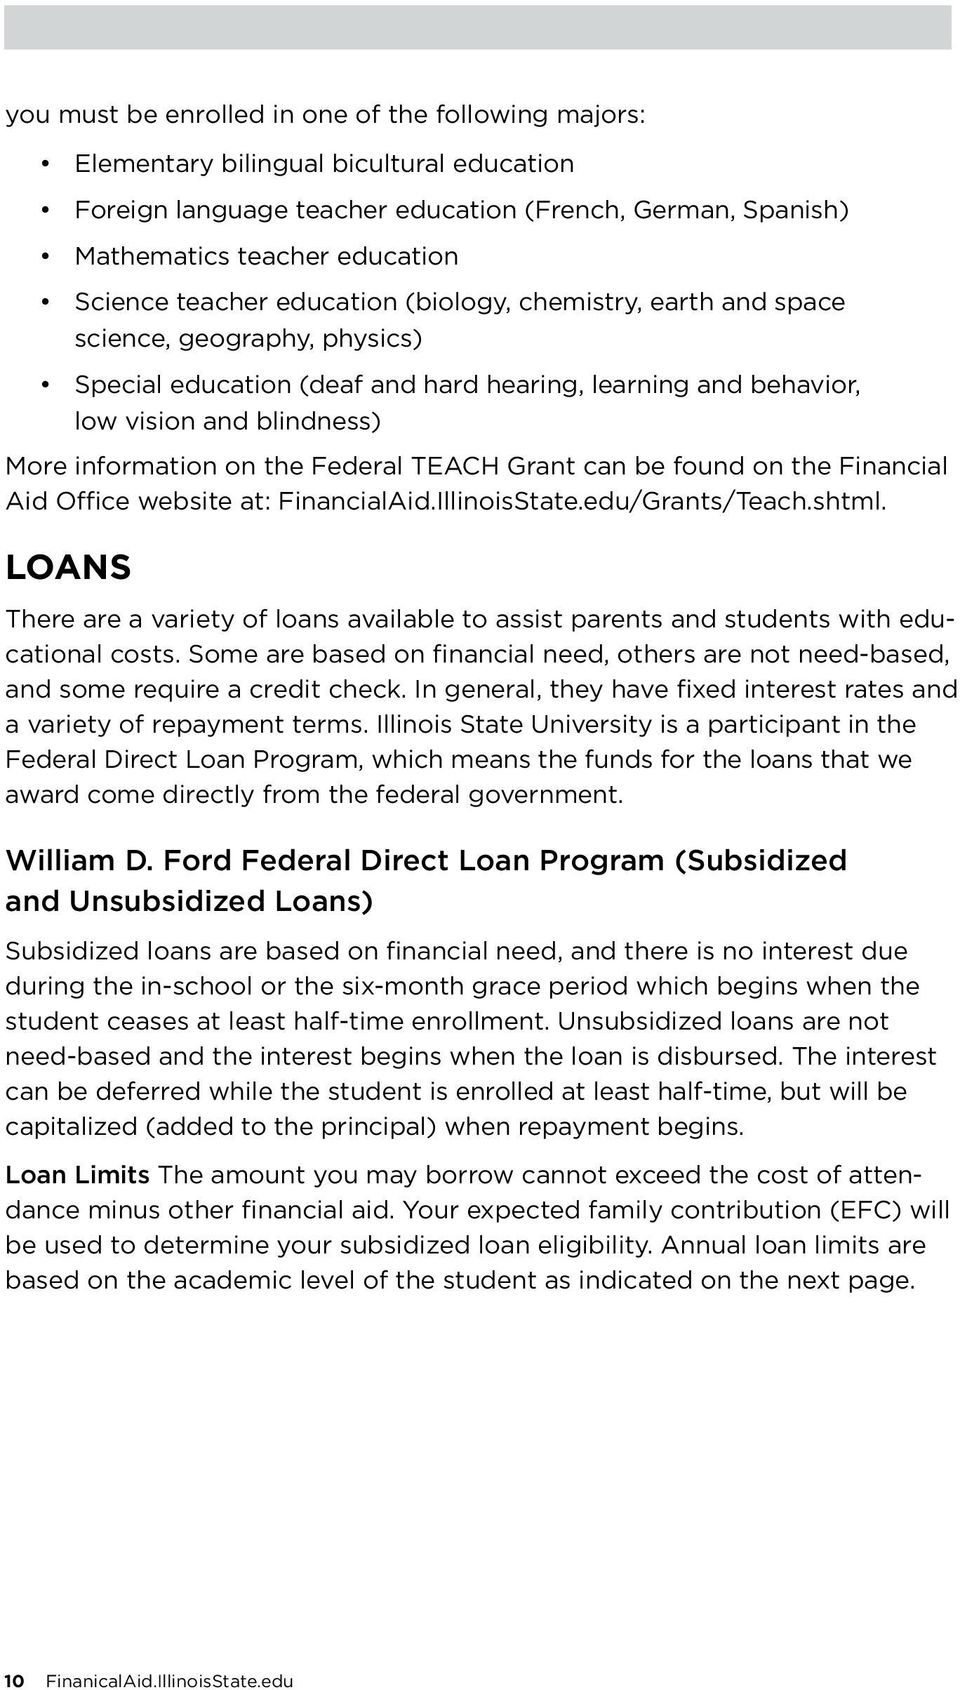 Federal TEACH Grant can be found on the Financial Aid Office website at: FinancialAid.IllinoisState.edu/Grants/Teach.shtml.